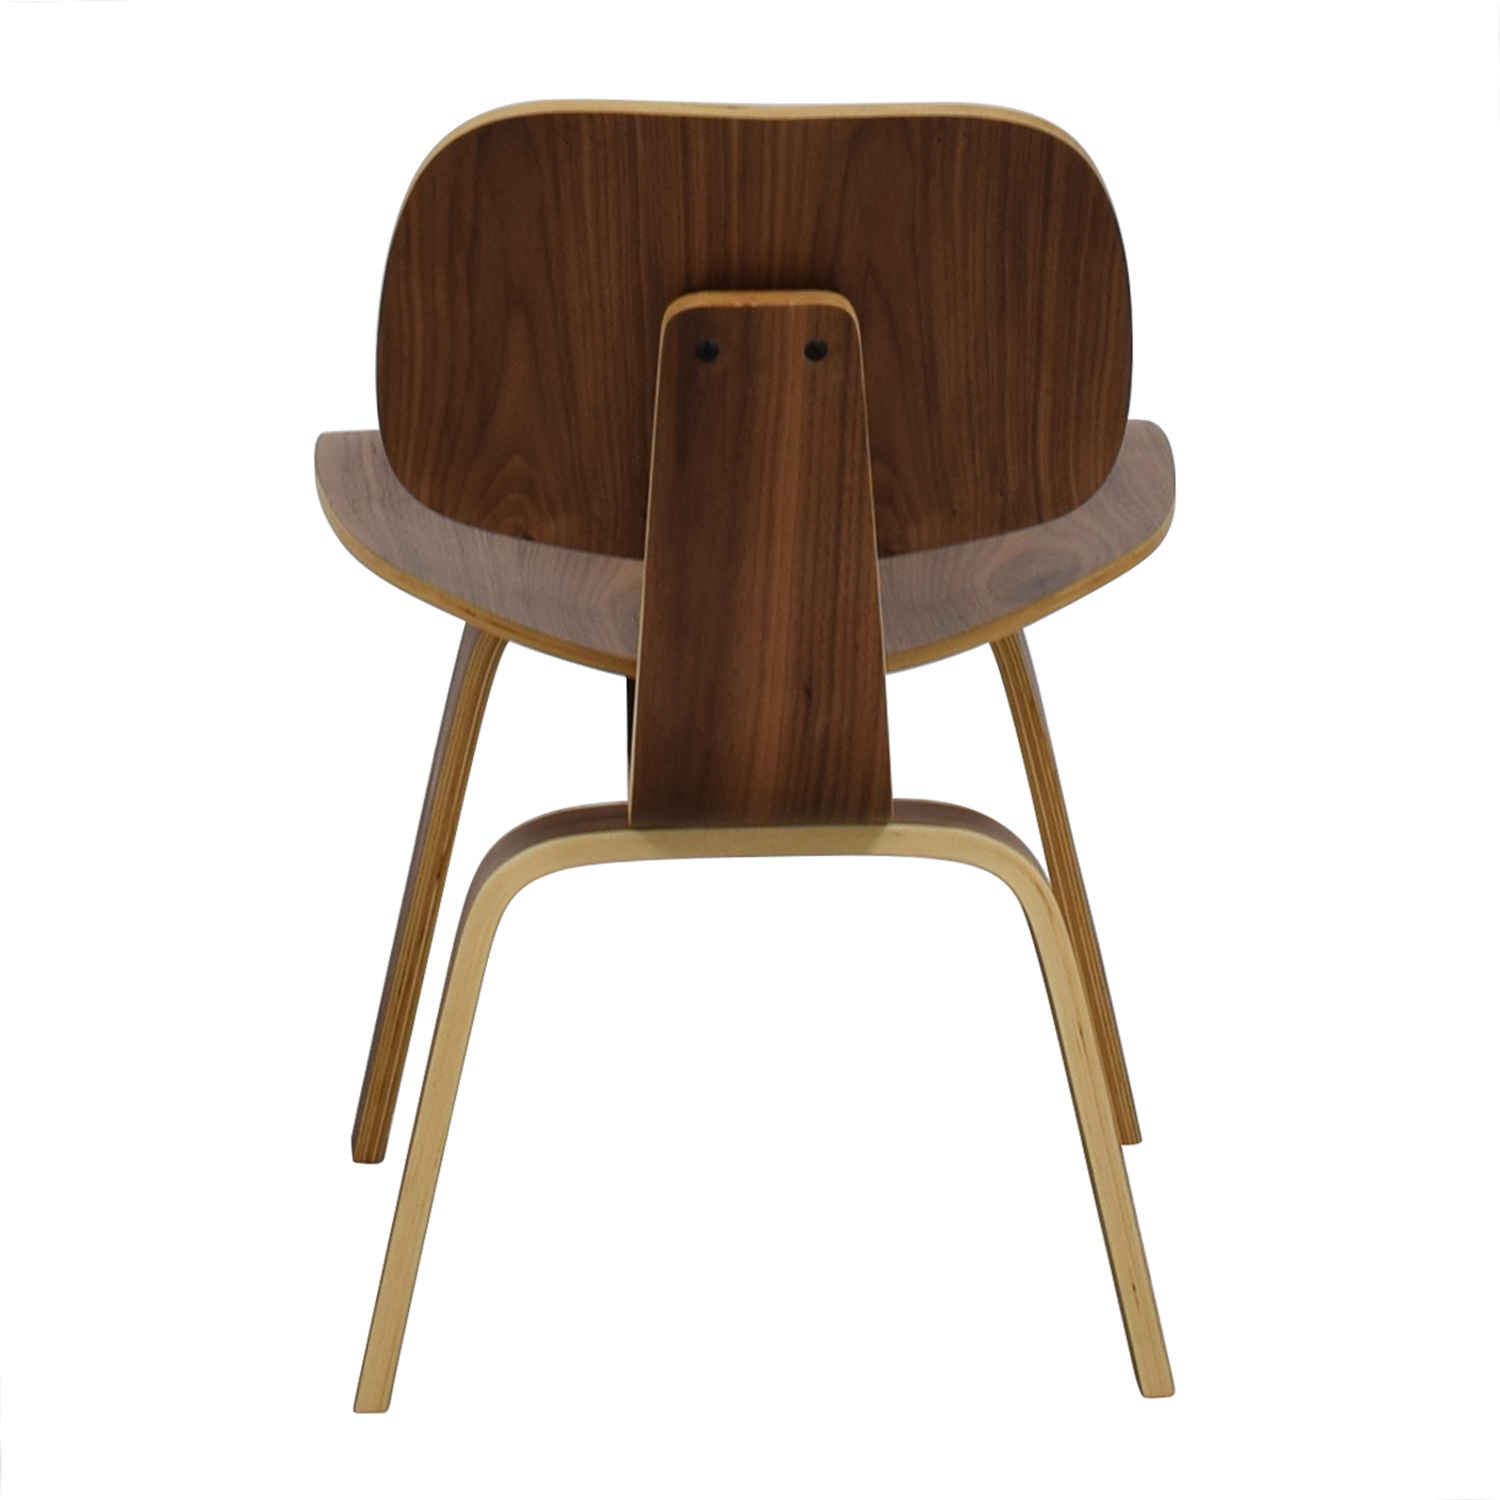 74 off inmod inmod plywood dining chair with wood legs for In mod furniture